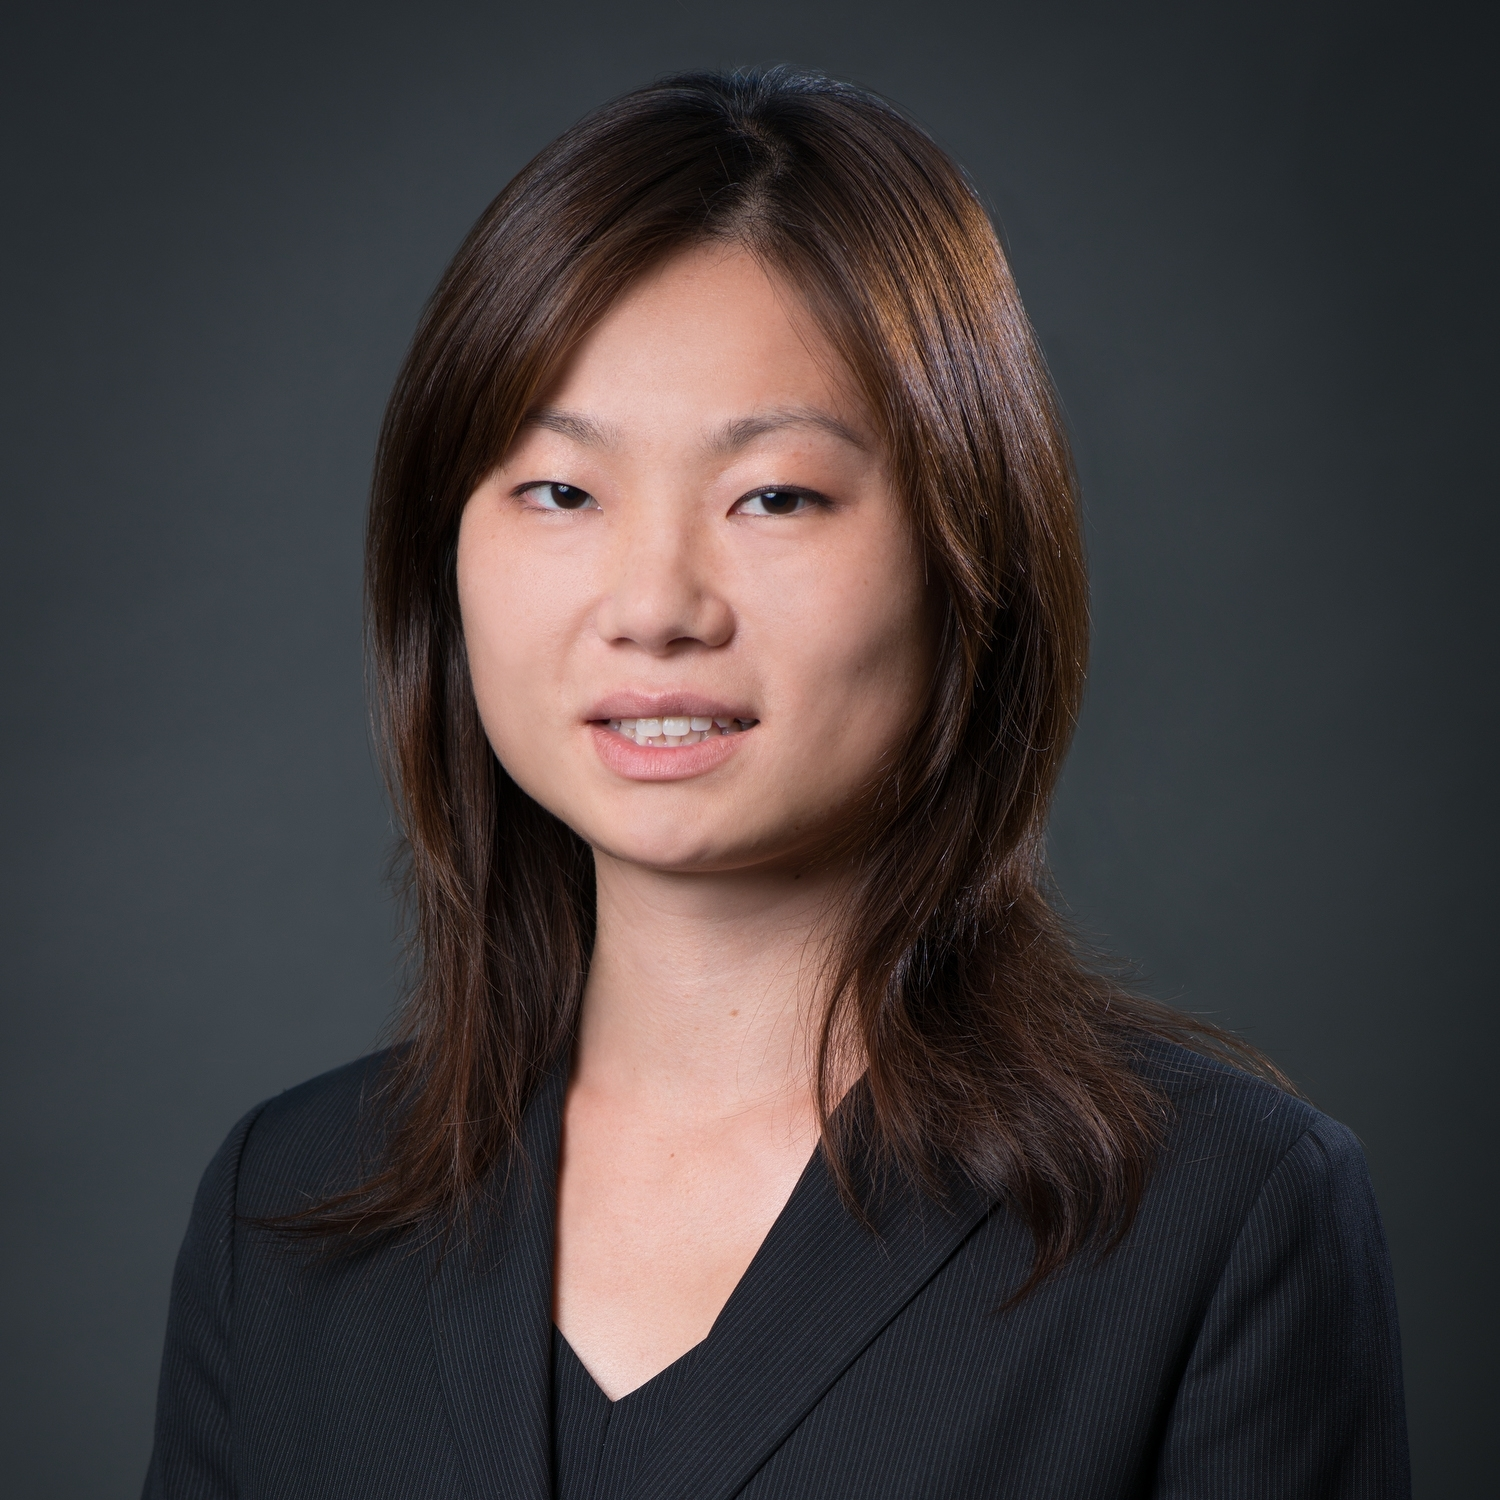 Angie Chau  Vice President  Ms. Chau has over 10 years of experience in the financial services industry, focusing initially on the Asian emerging markets. From 2004 to 2010, Ms. Chau advised banks, insurance and asset management companies on developing their regional growth strategies and executing M&A and corporate finance transaction across nine Asian markets, beginning as a Financial Analyst in UBS's Asia Financial Institutions Group in Hong Kong, following as an Associate in Lehman Brothers' Asia Corporate Strategy team in Tokyo, and as a Manager in Macquarie's Hong Kong-based Asia Financial Institutions Group.  At Albright Capital, Ms. Chau was involved in the execution of the structured investments in Flemingo and Innovattel, and the most recent private equity investment in APR Energy.  Ms. Chau received a BS, cum laude, in Operations Research and Industrial Engineering from Cornell University in 2004 and a MBA from Columbia Business School with a concentration in Finance in 2012.